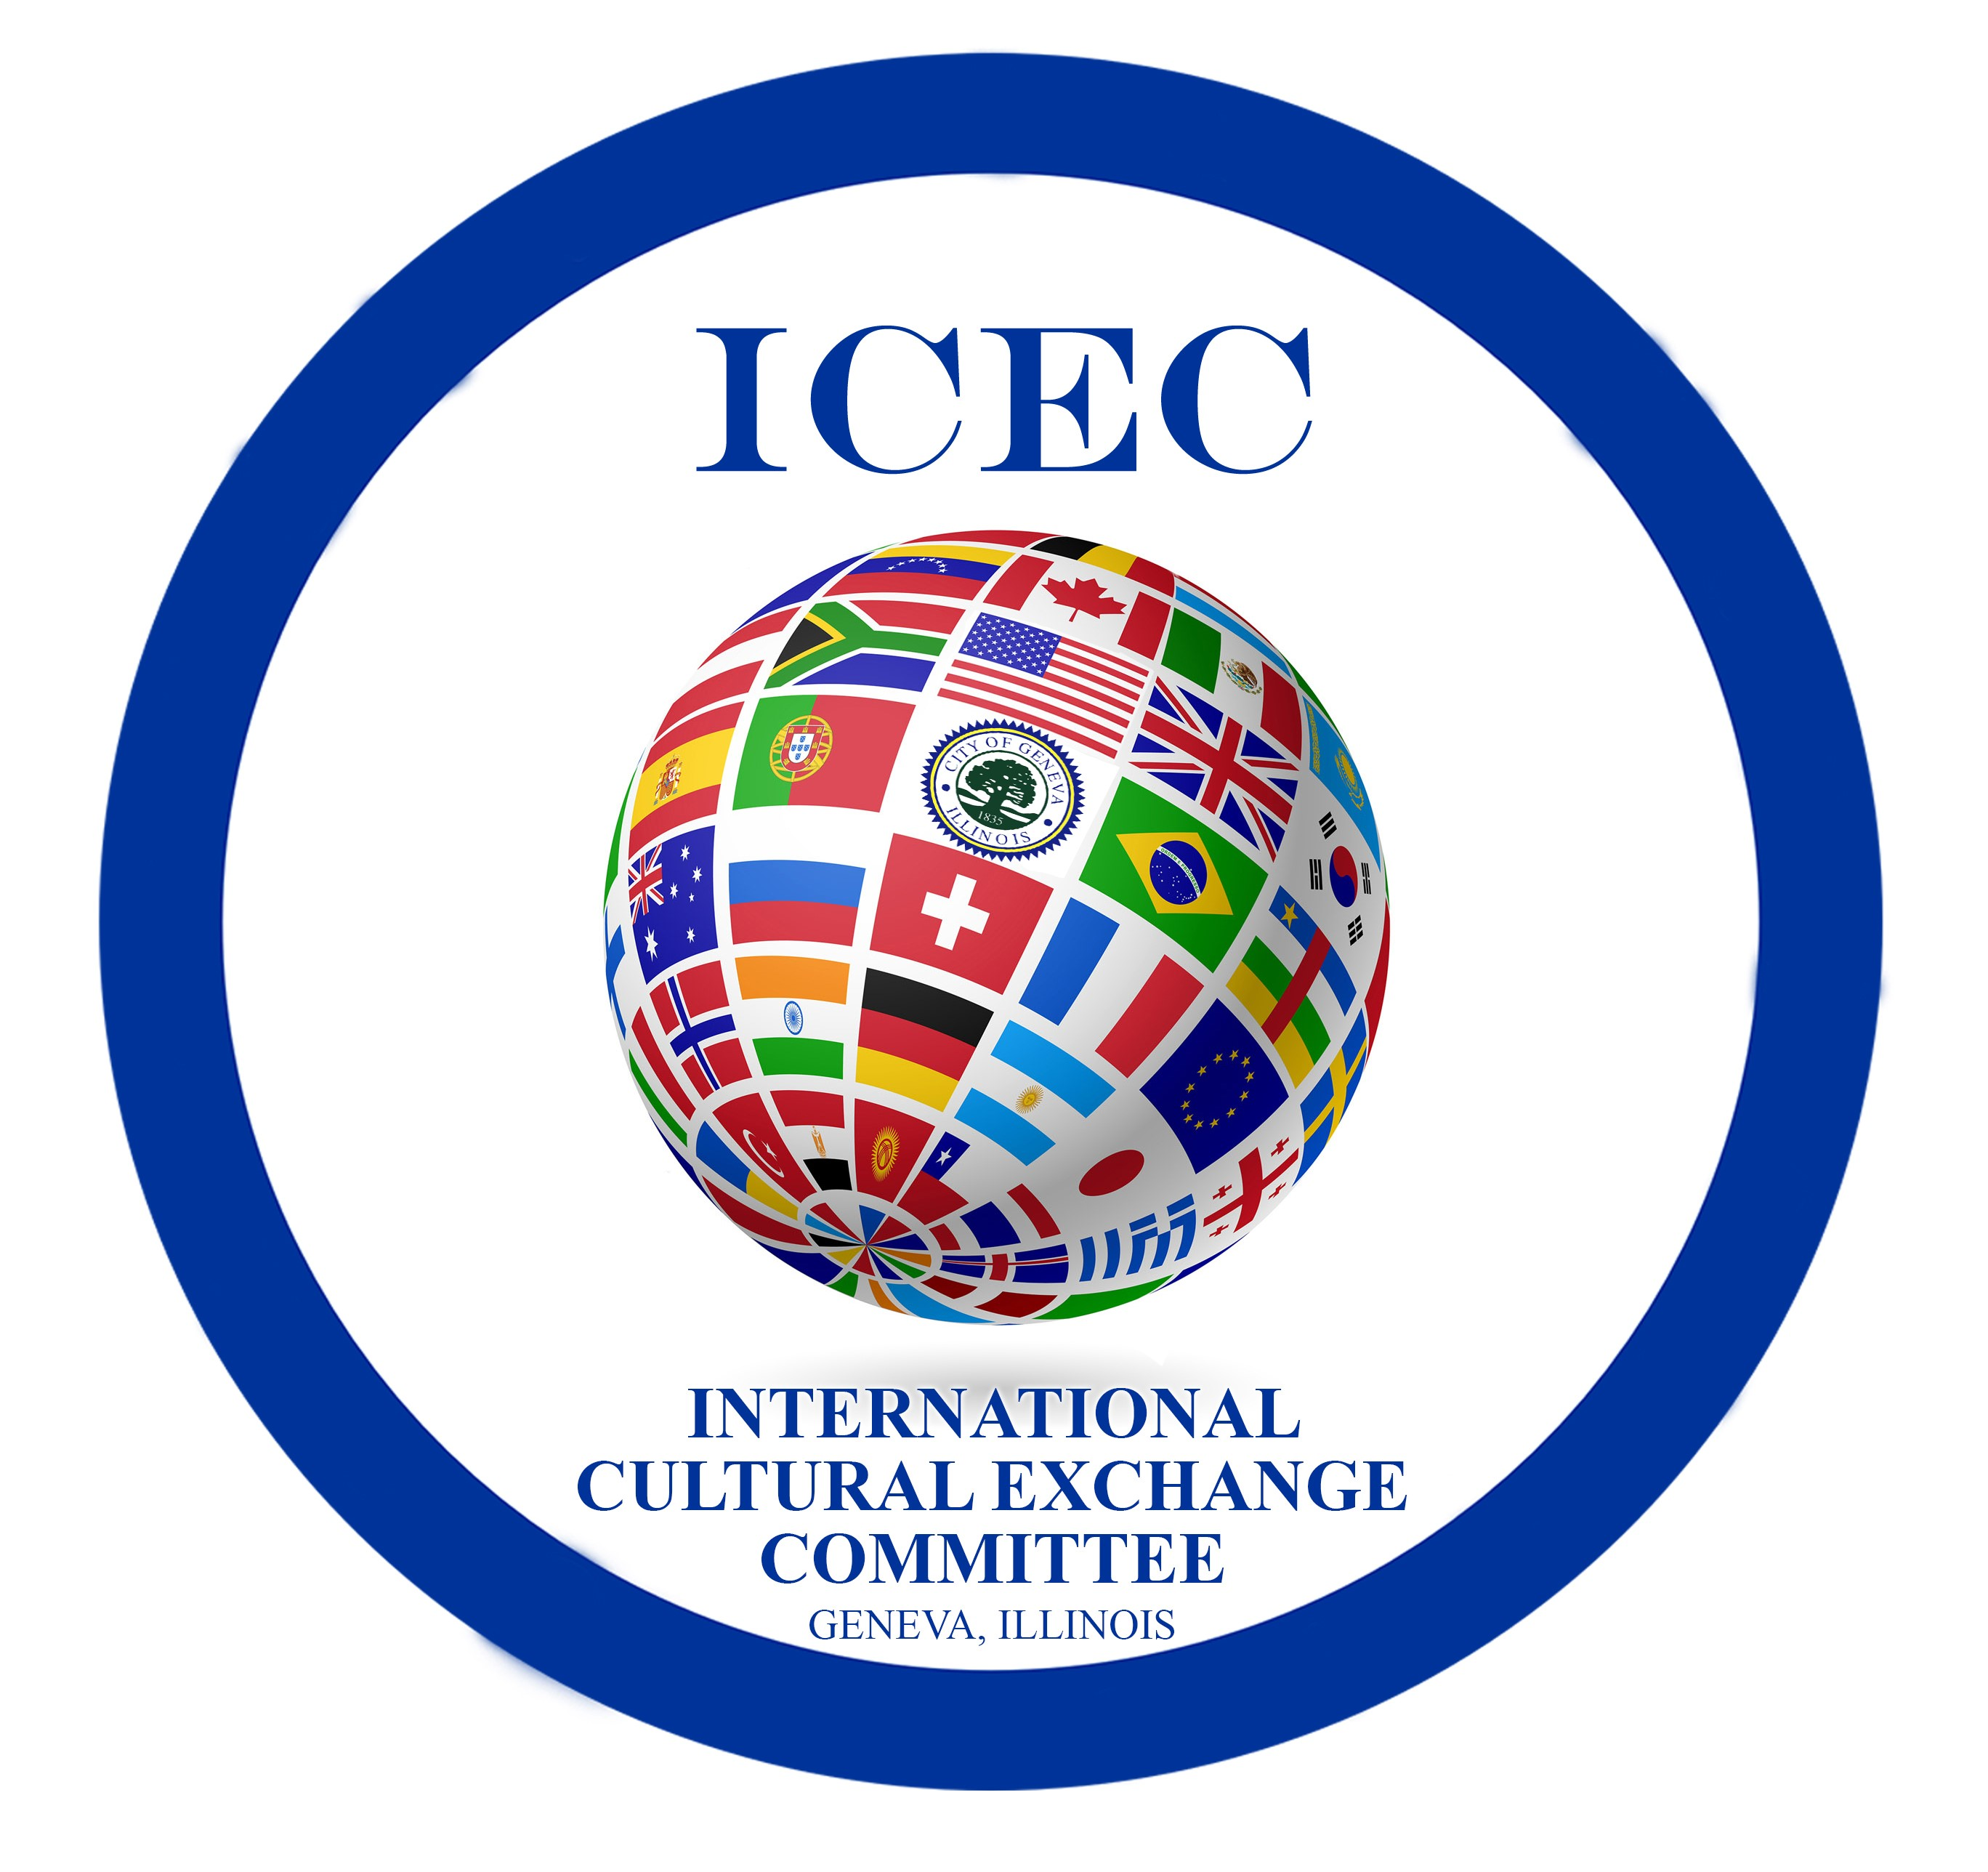 International Cultural Exchange Committee